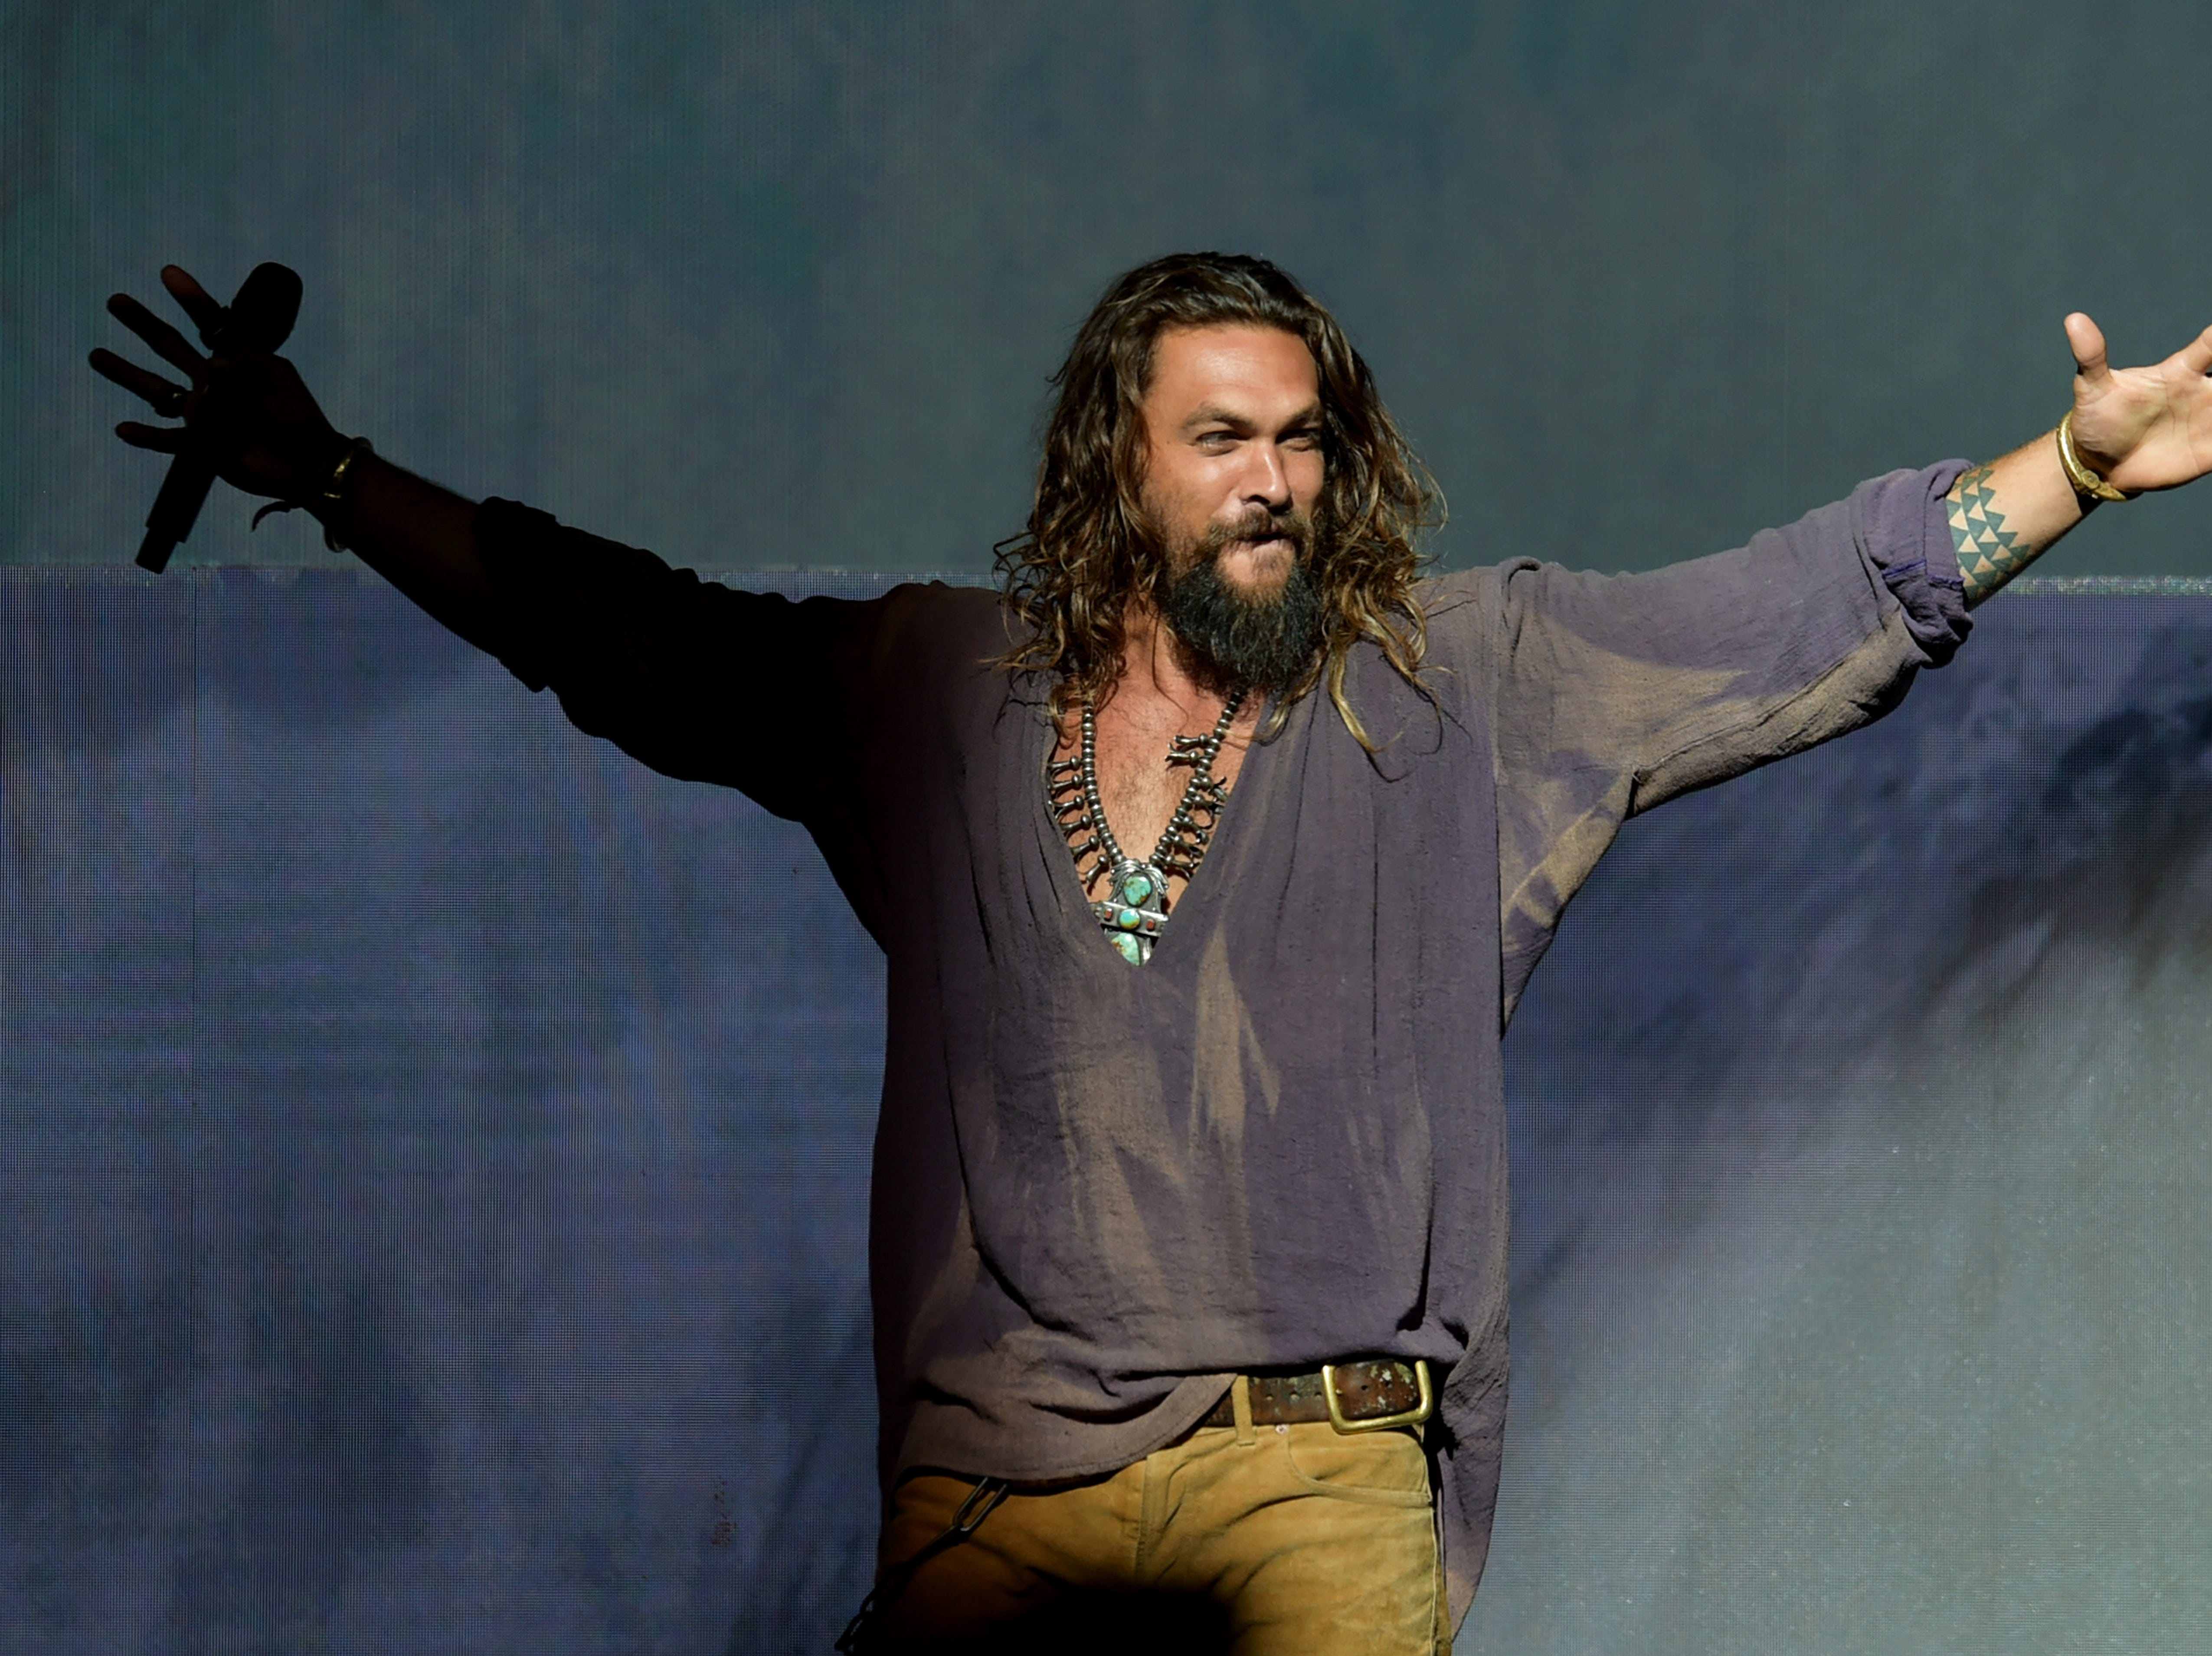 July 21:  Jason Momoa speaks onstage at the Warner Bros. theatrical panel during Comic-Con in San Diego, California.